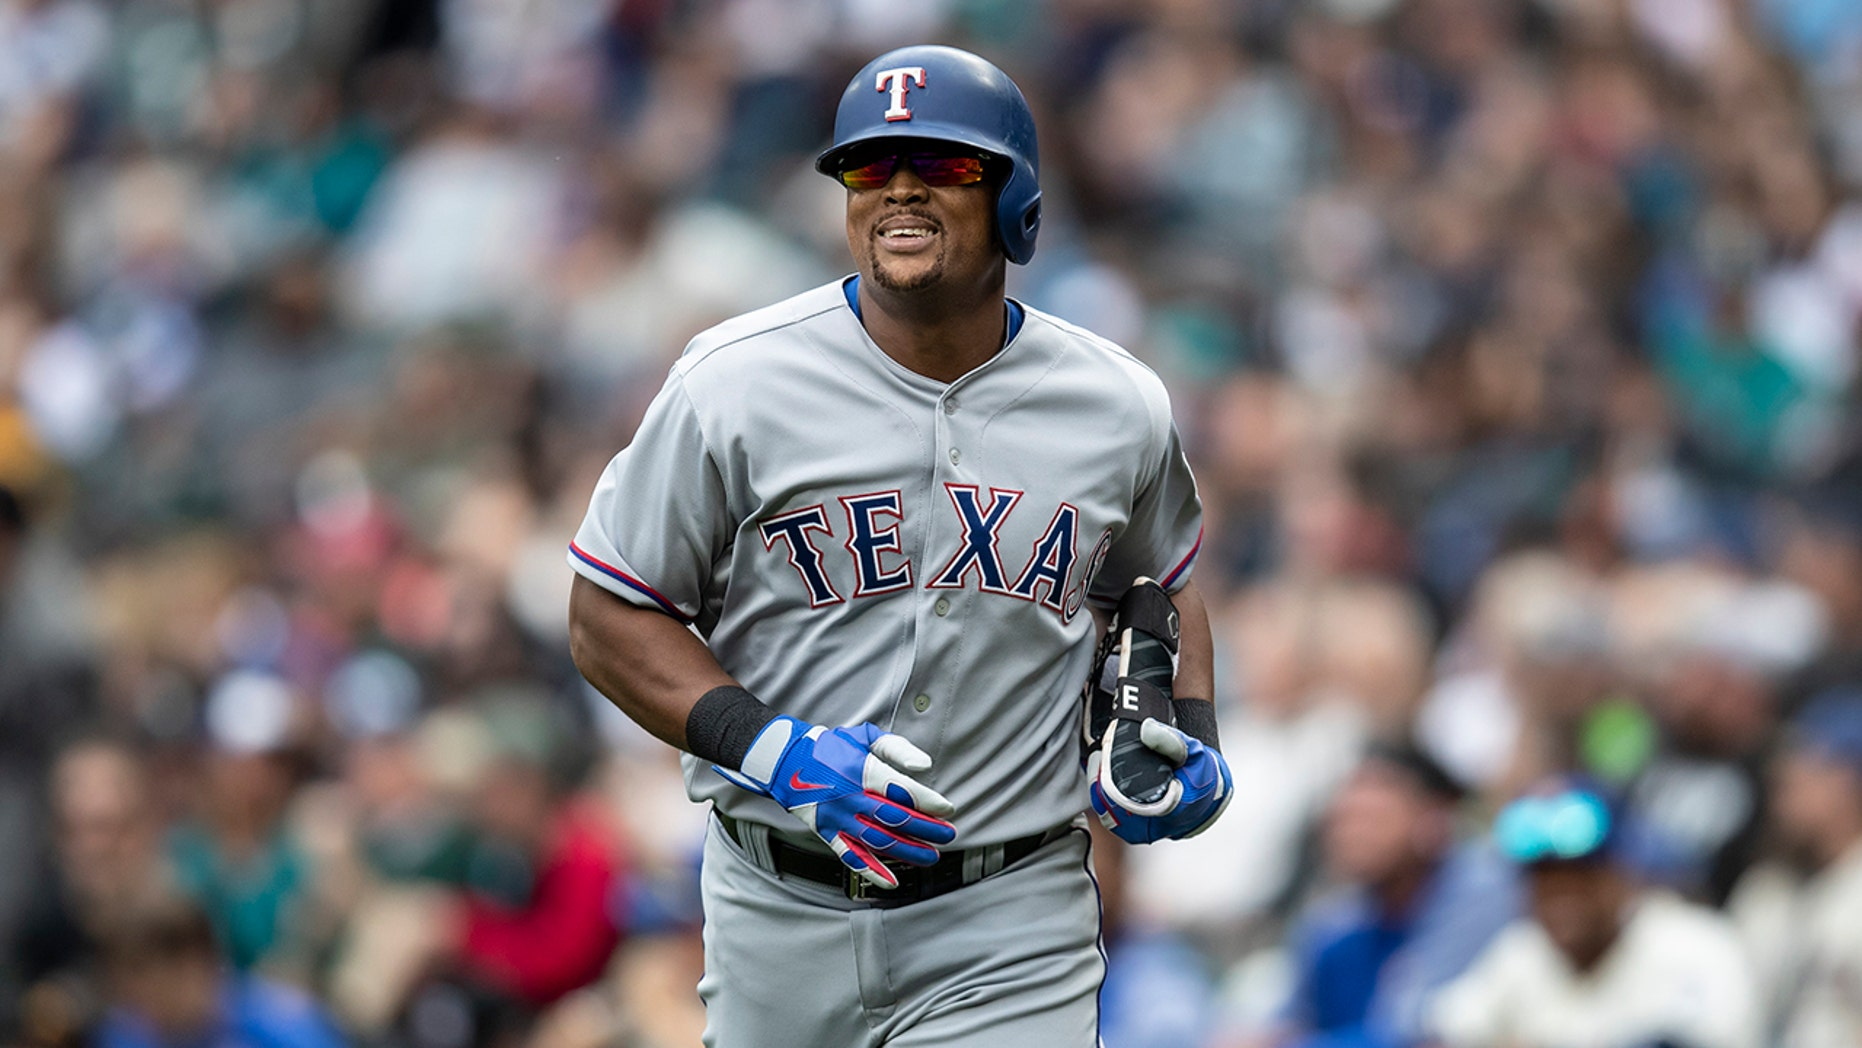 Rangers' Adrian Beltre retires after 21 seasons, 3166 hits